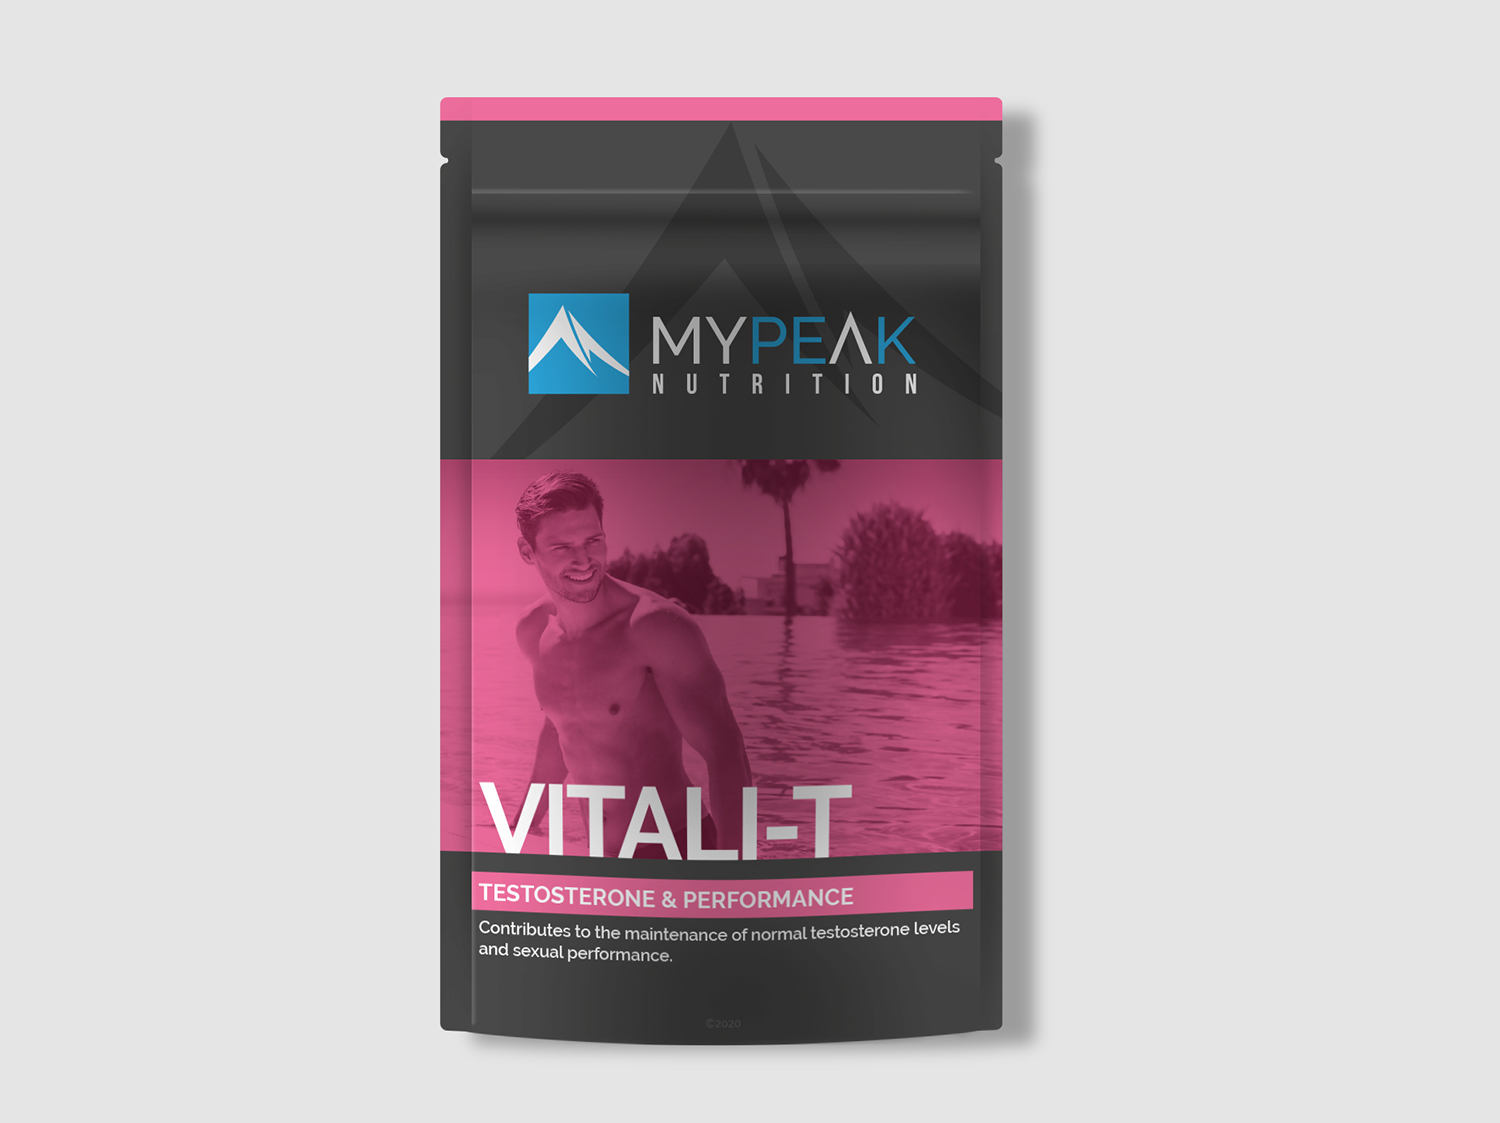 MyPeak Packaging Design Vitali-T - My Name is Dan